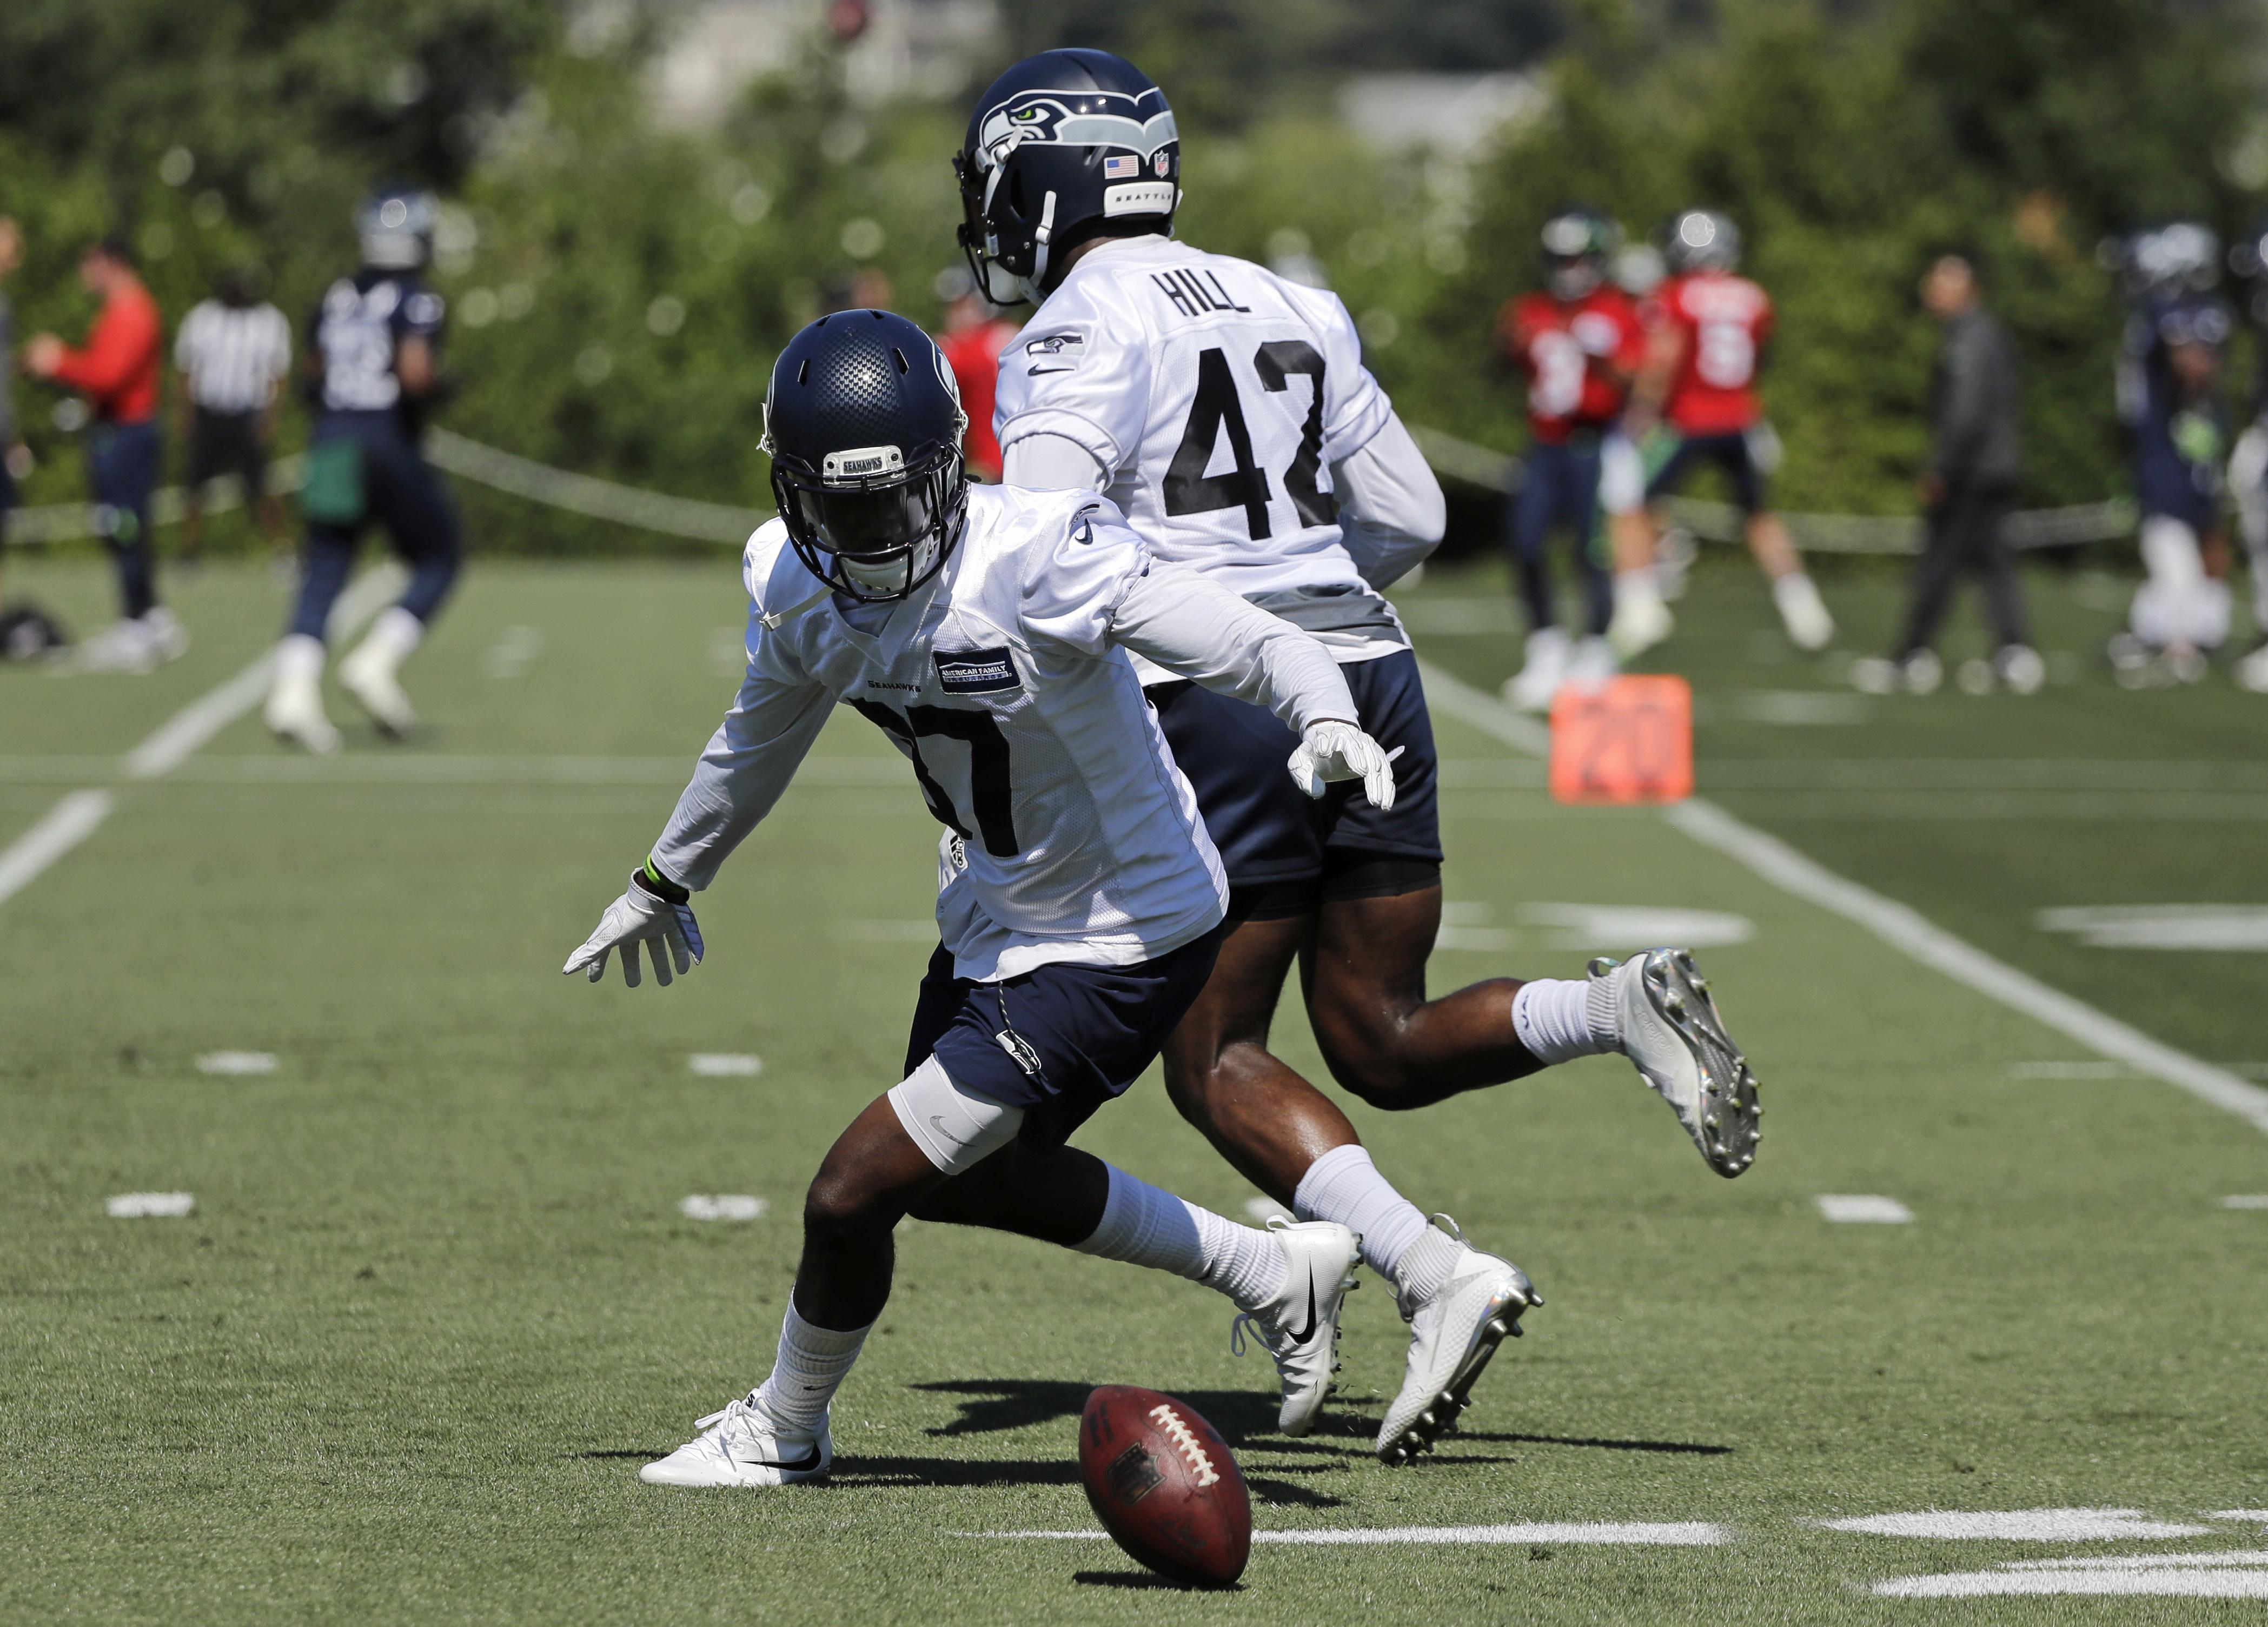 a960a7e42 Seahawks expected to start 15 new players in preseason opener ...